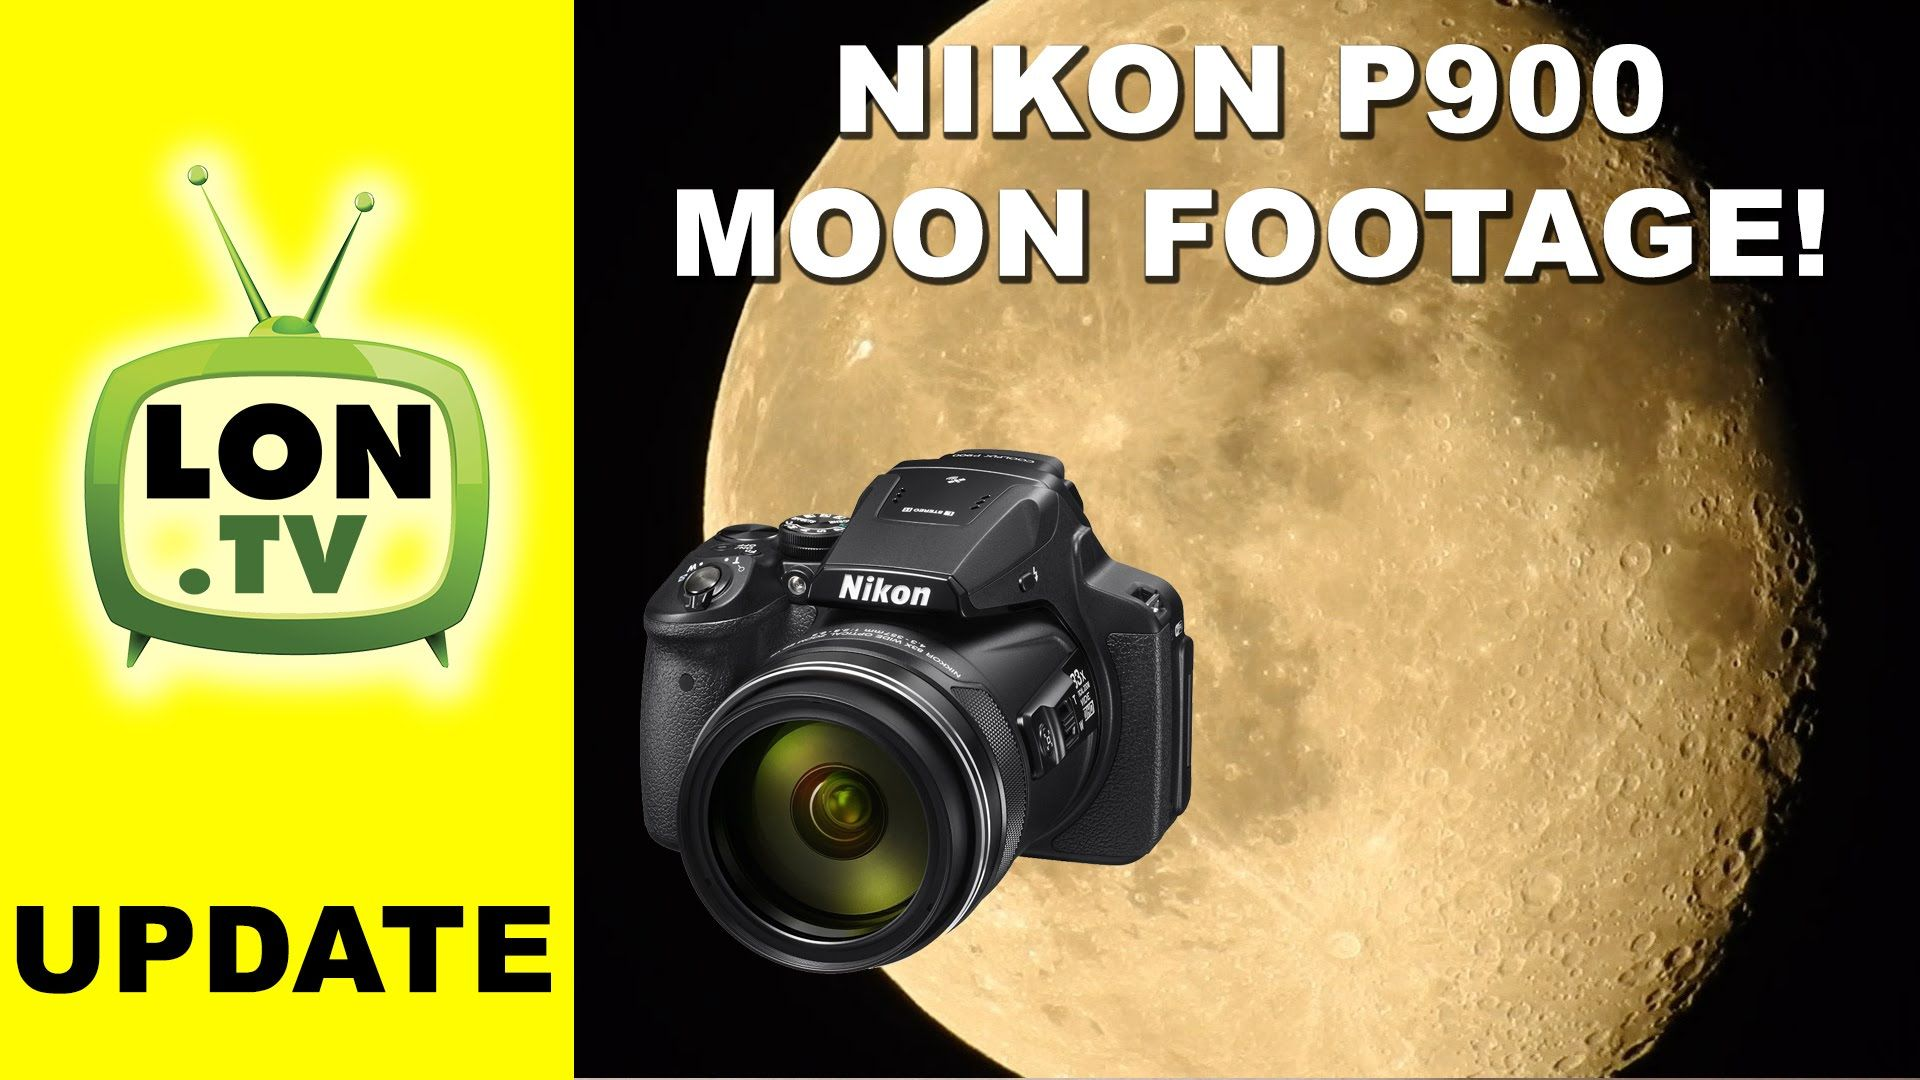 Nikon Coolpix P900 Zoom Is A Telescope Check Out This Moon Detail Nikon Coolpix P900 Nikon Coolpix Nikon P900